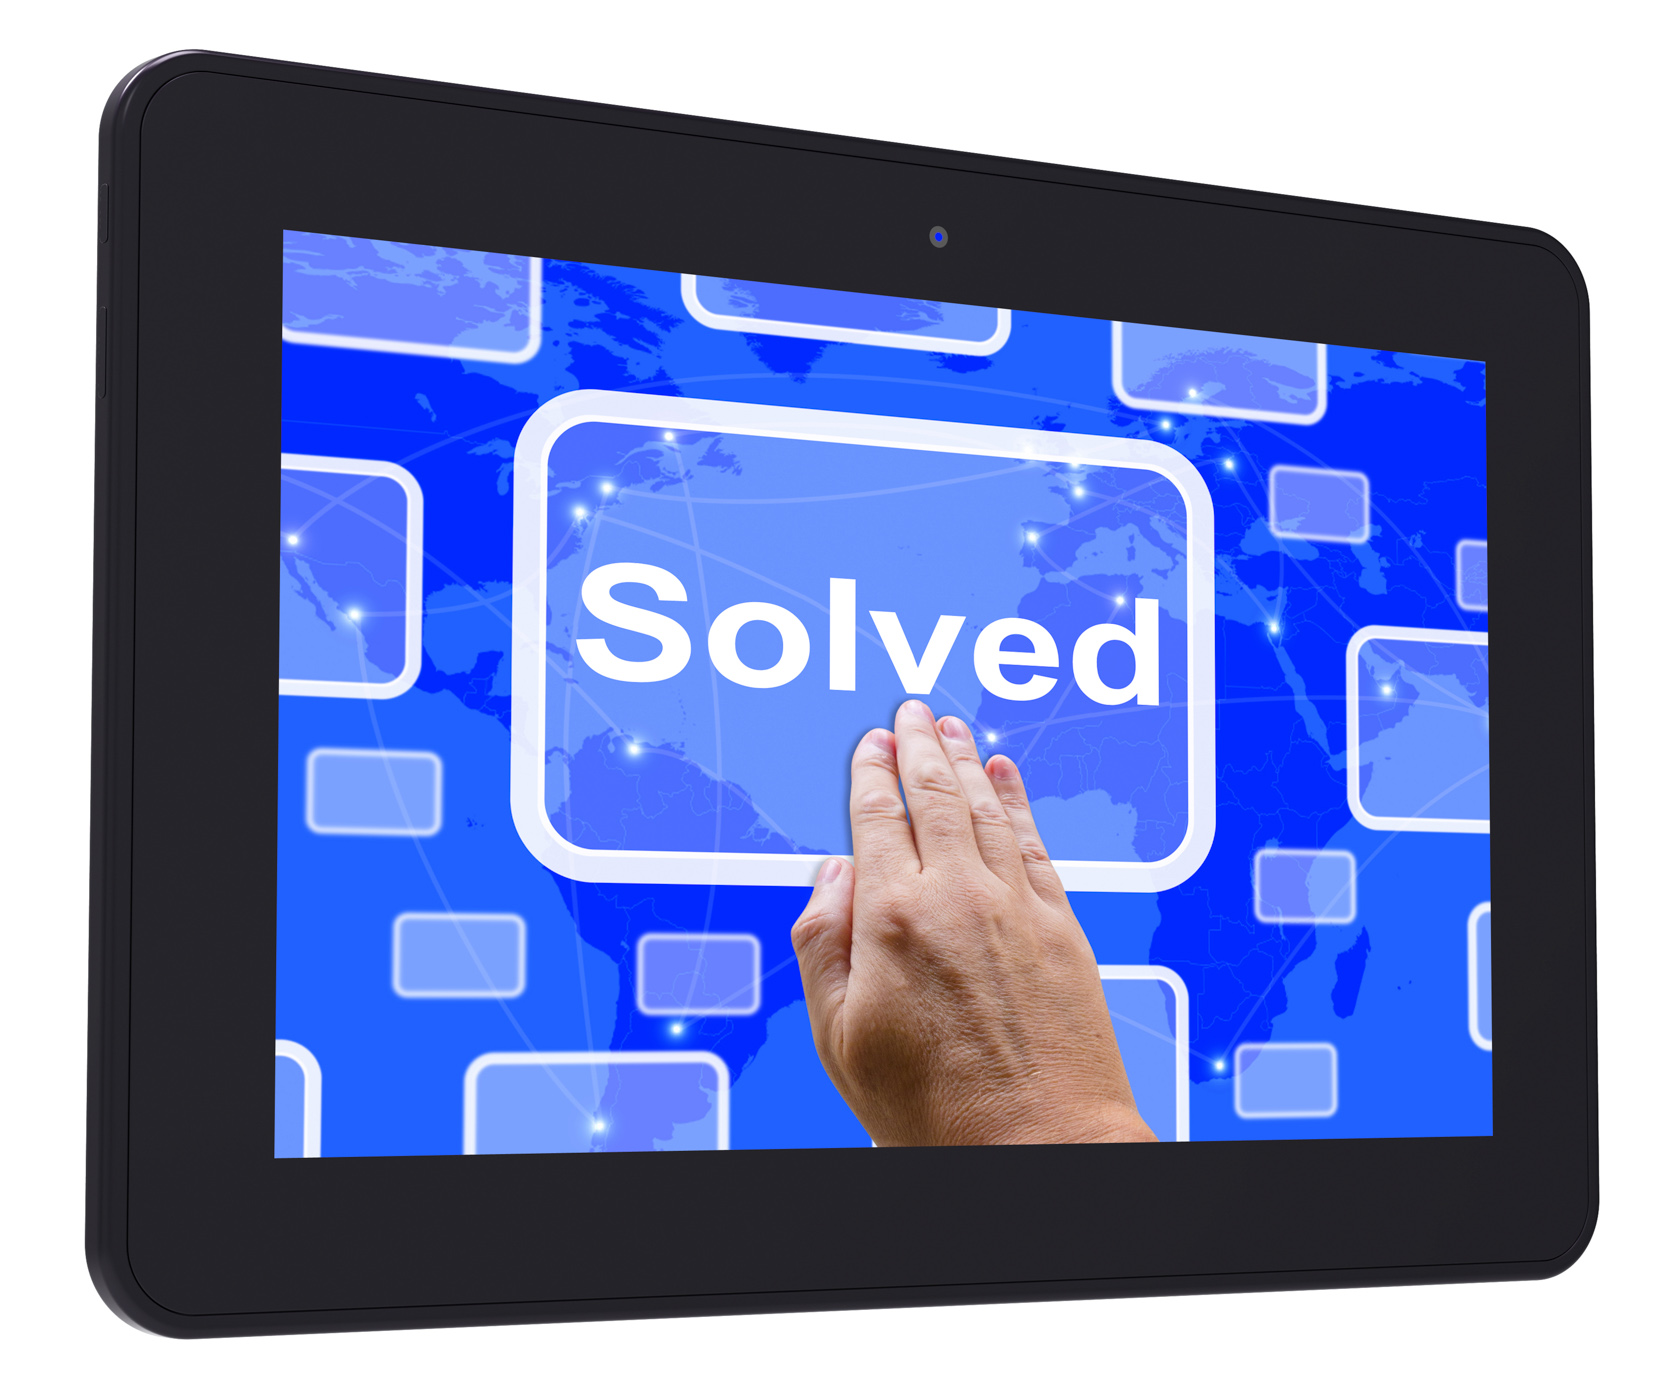 Solve tablet touch screen shows achievement resolution solution and so photo